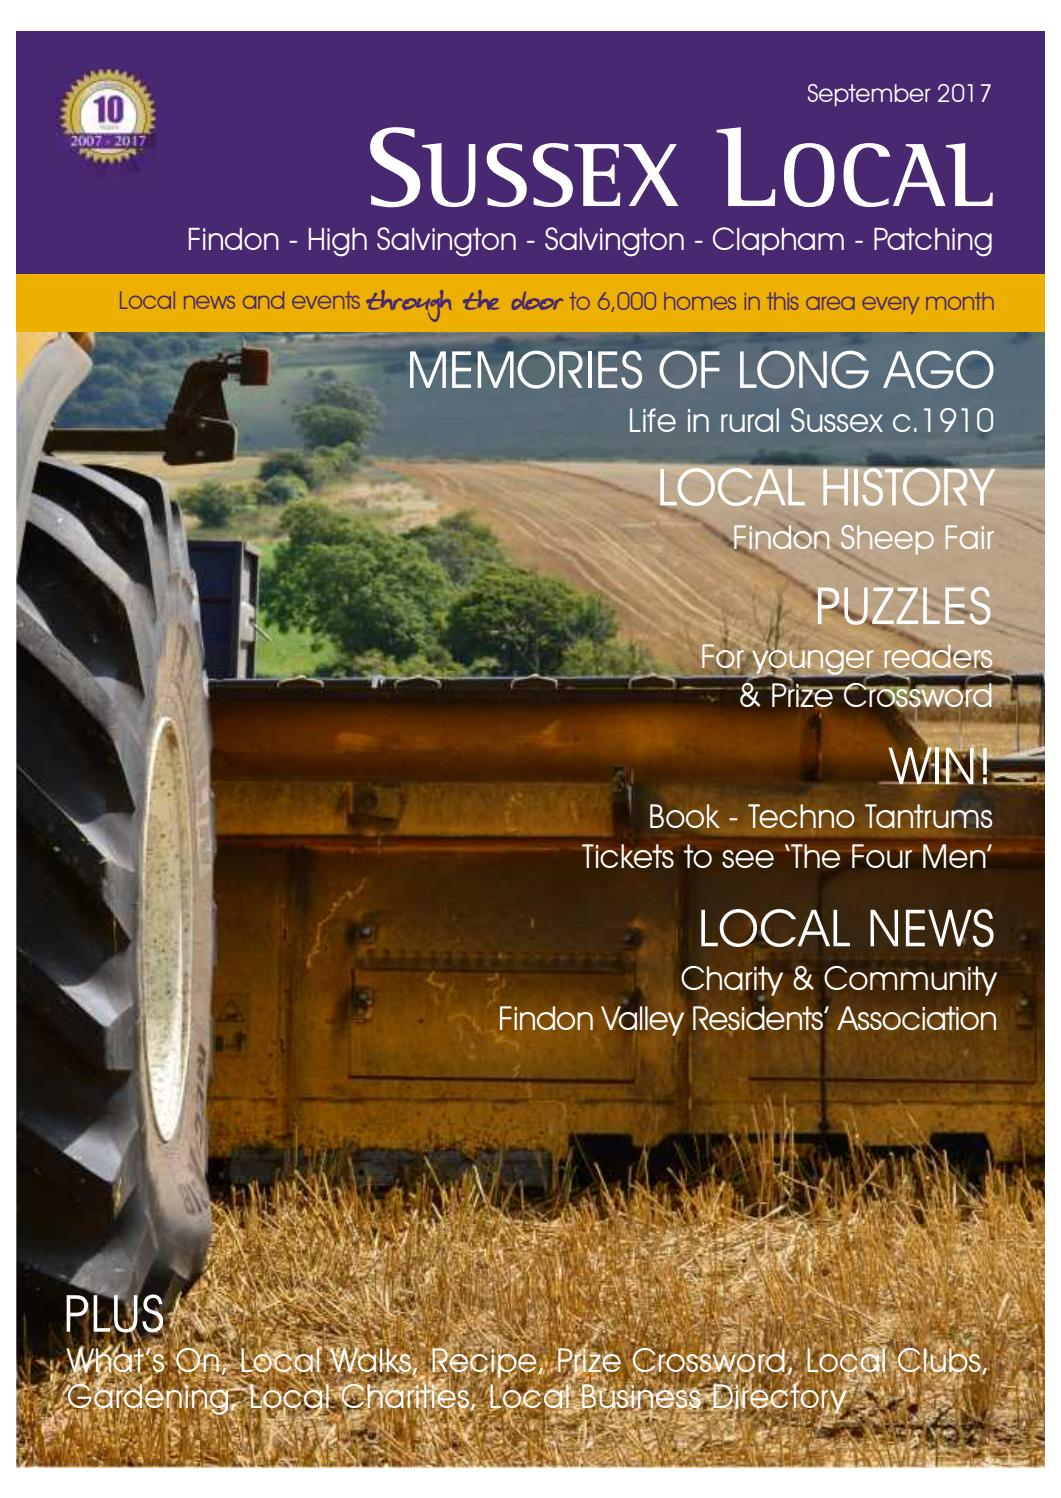 Sussex local findon september 2017 by sussex local magazine issuu malvernweather Image collections